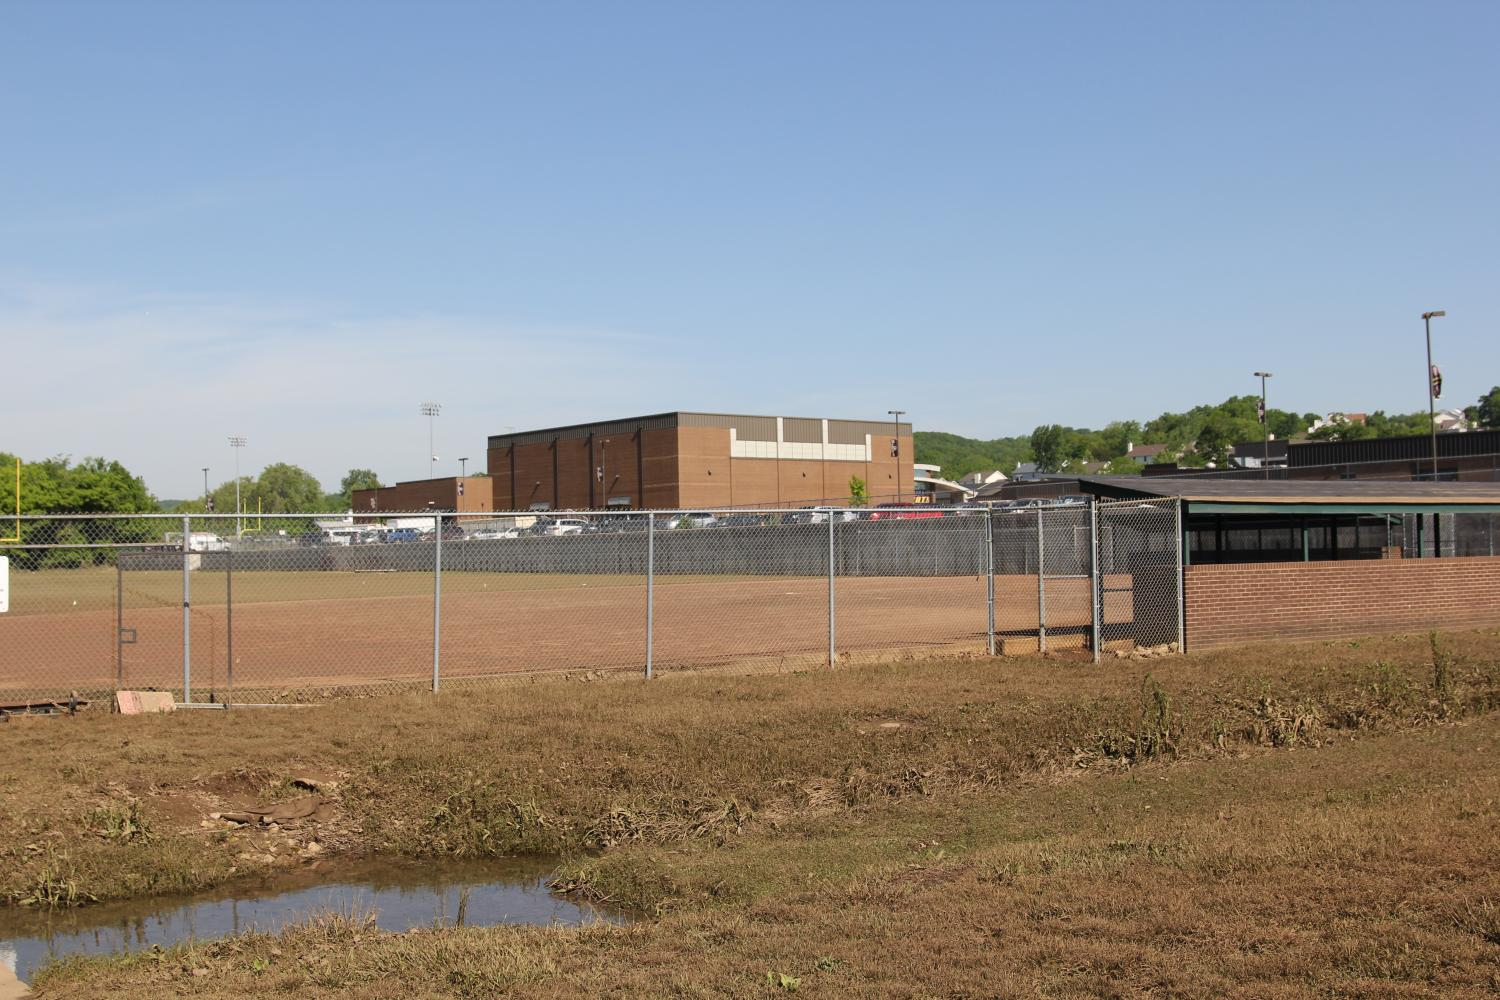 The baseball fields at EHS lay exposed once again after the flood of 2017, May 9.